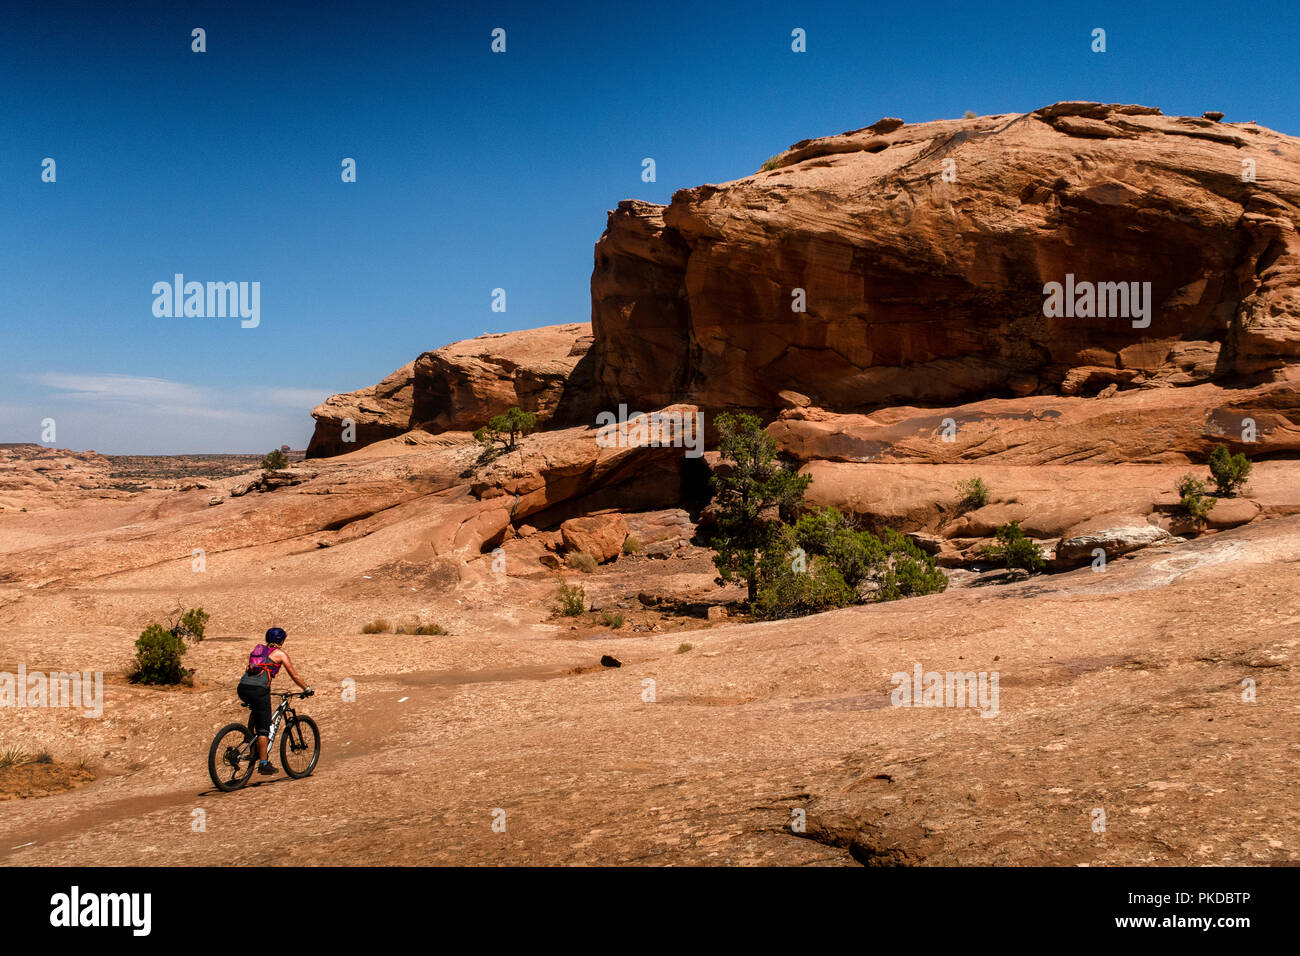 A woman rides a mountain bike on the world famous Slickrock trail in Moab, Utah, USA. - Stock Image